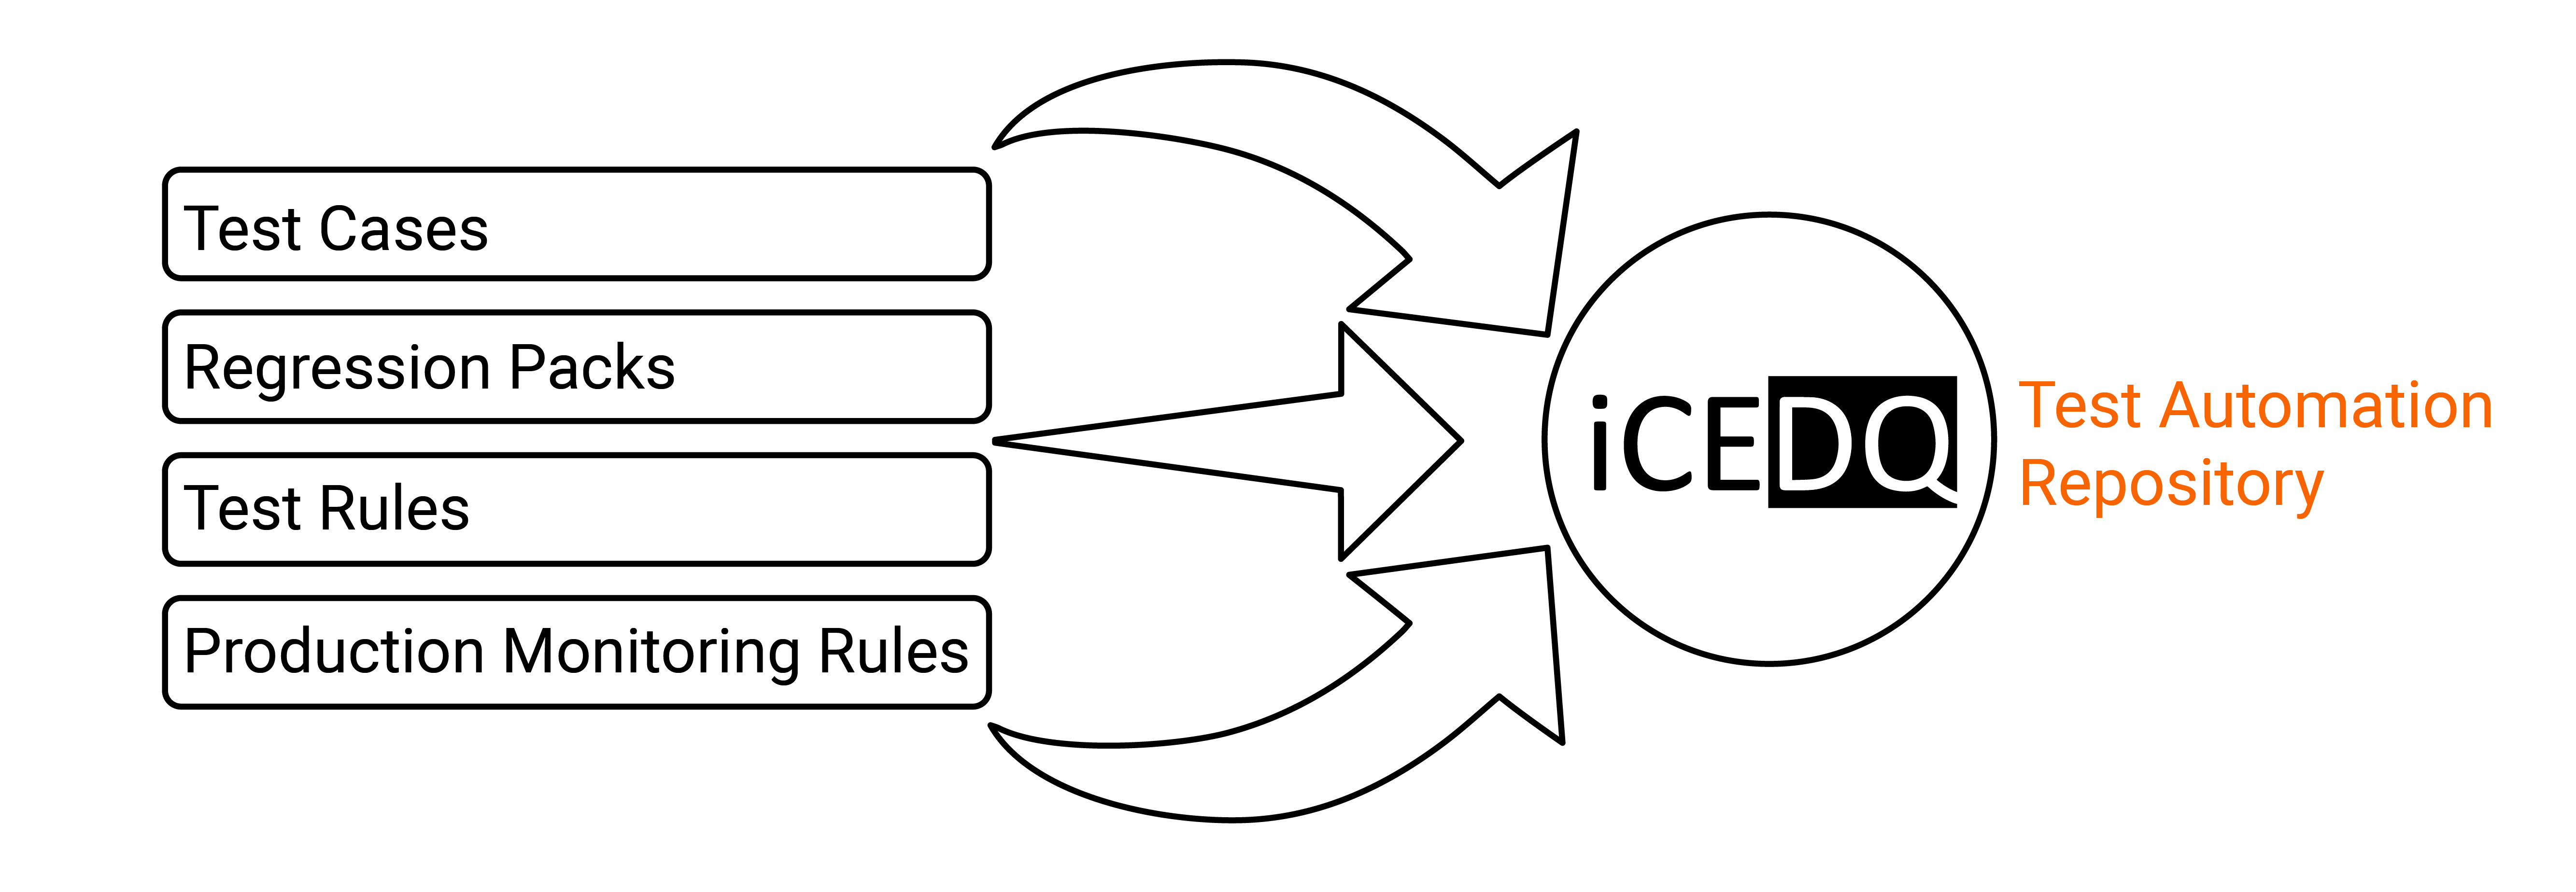 Test Automation Repository-iCEDQ